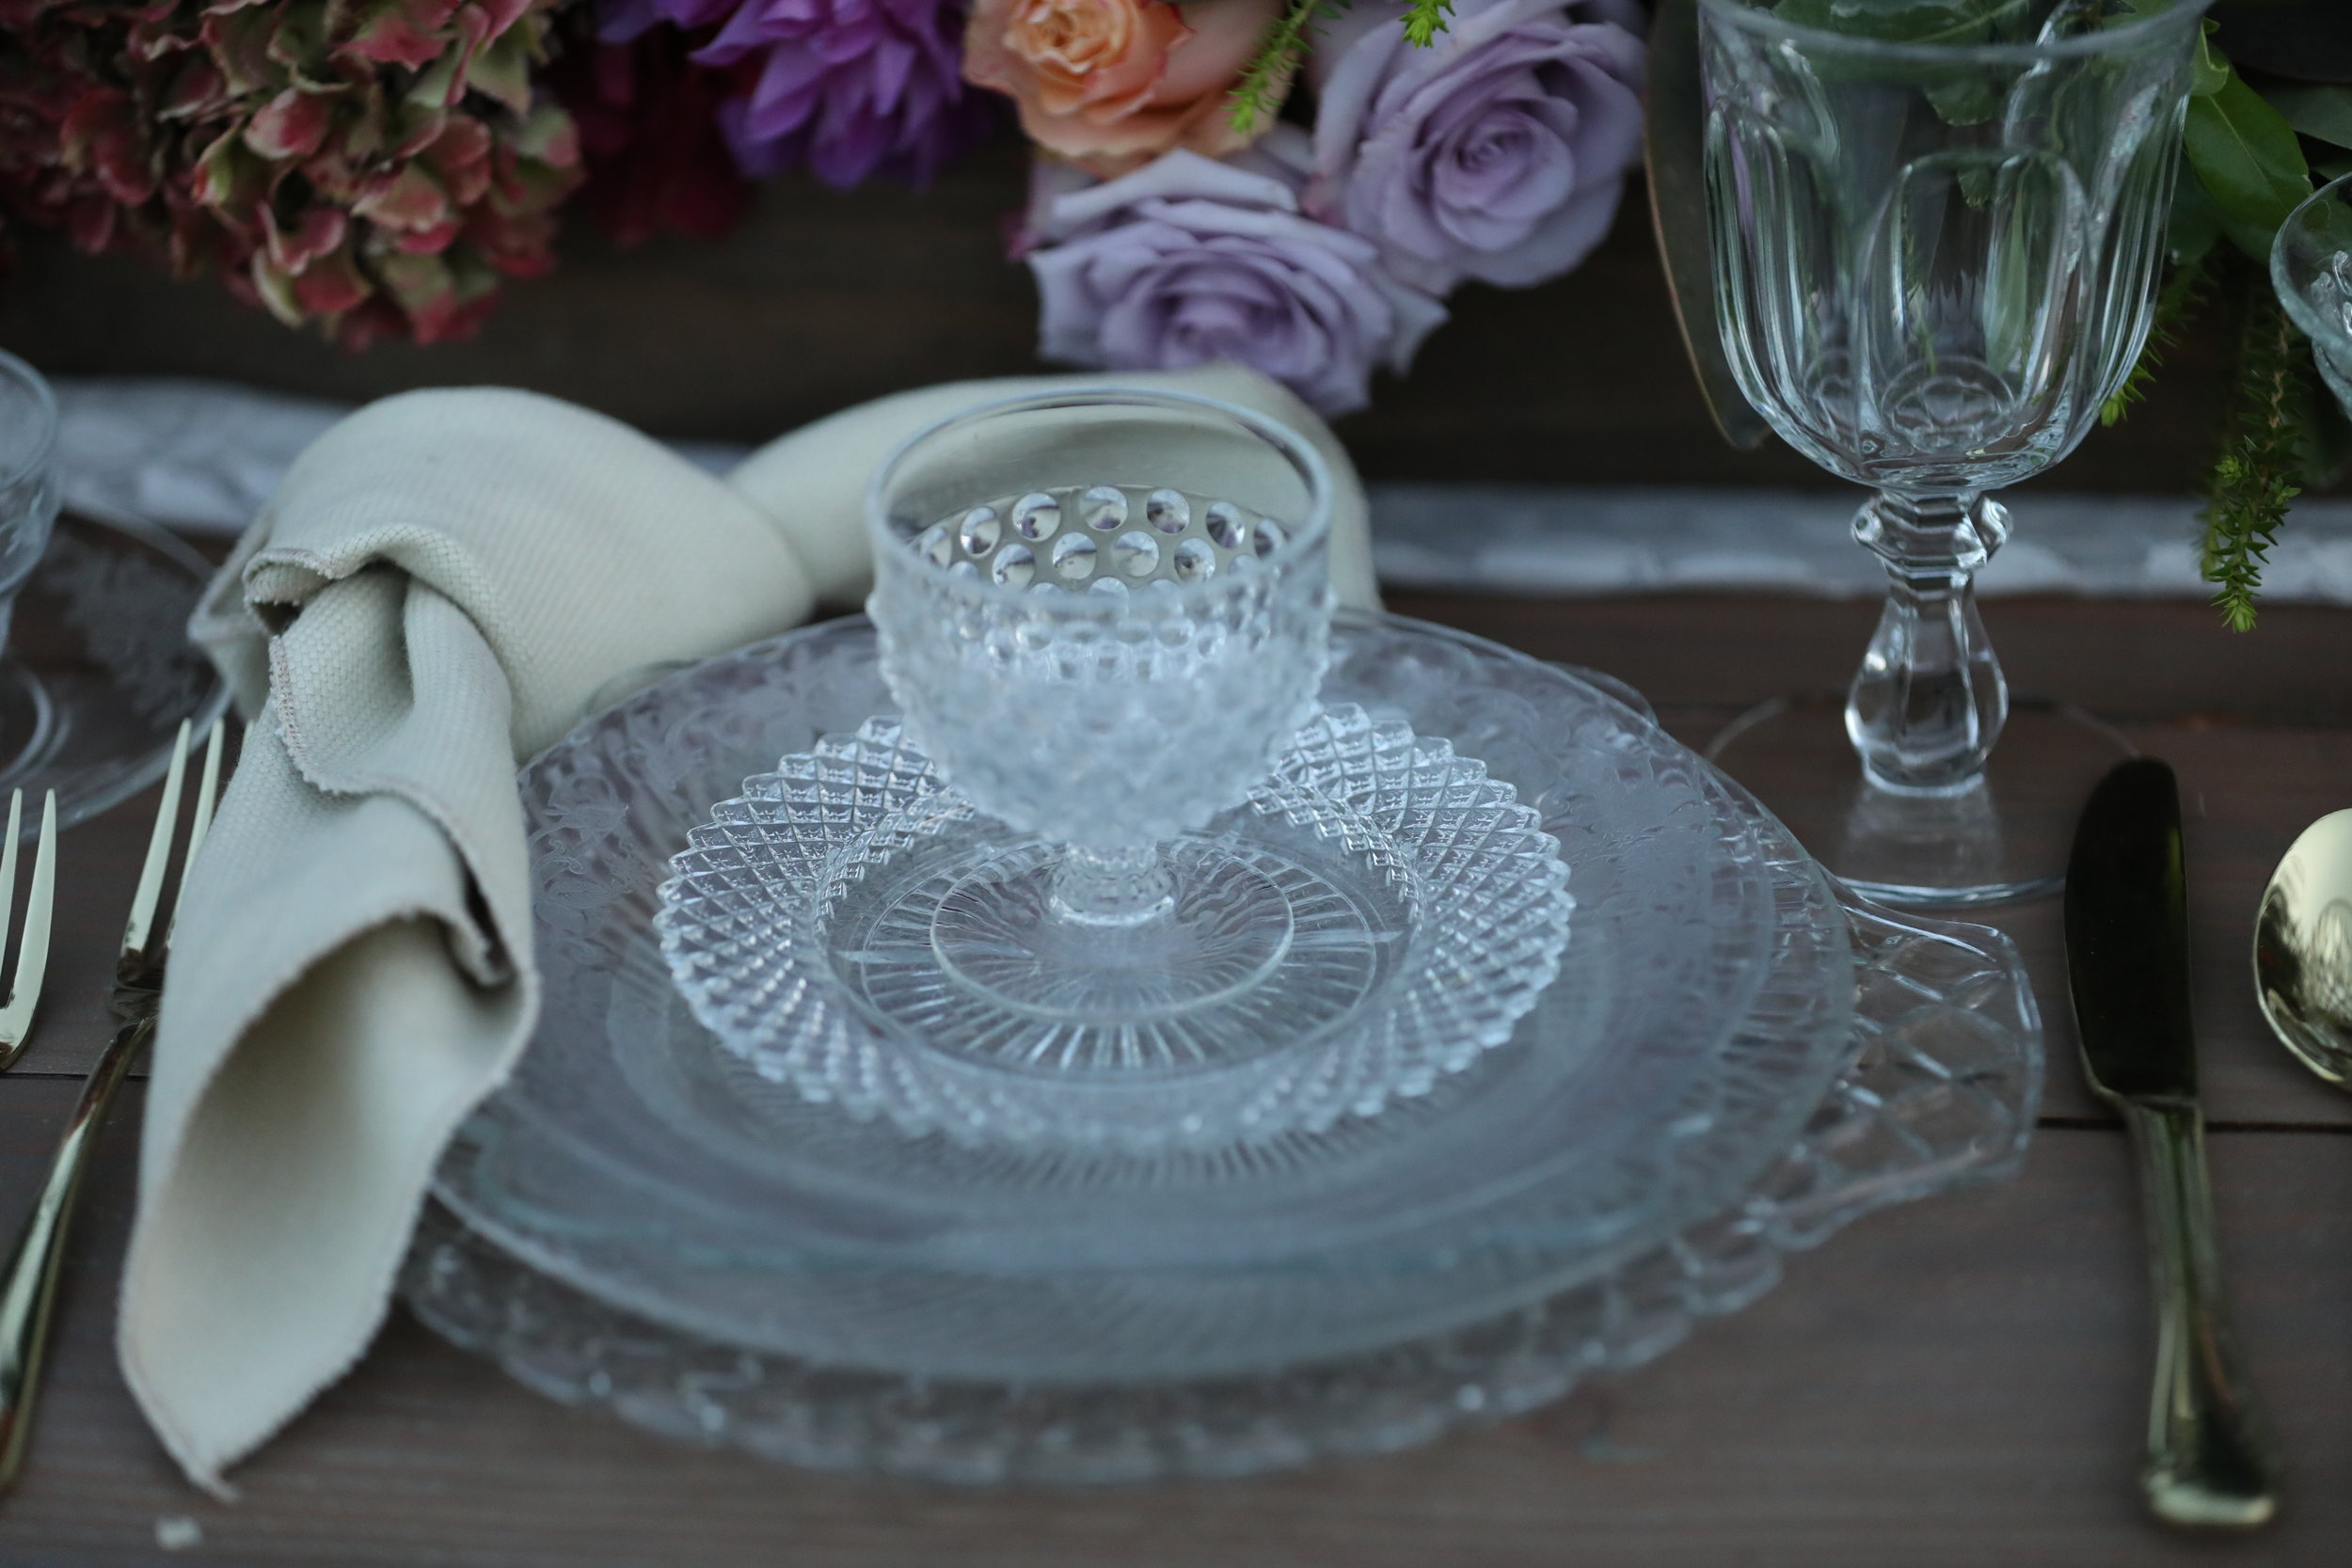 Cut glass charger plate set at a wedding table. Vintage wedding rentals.